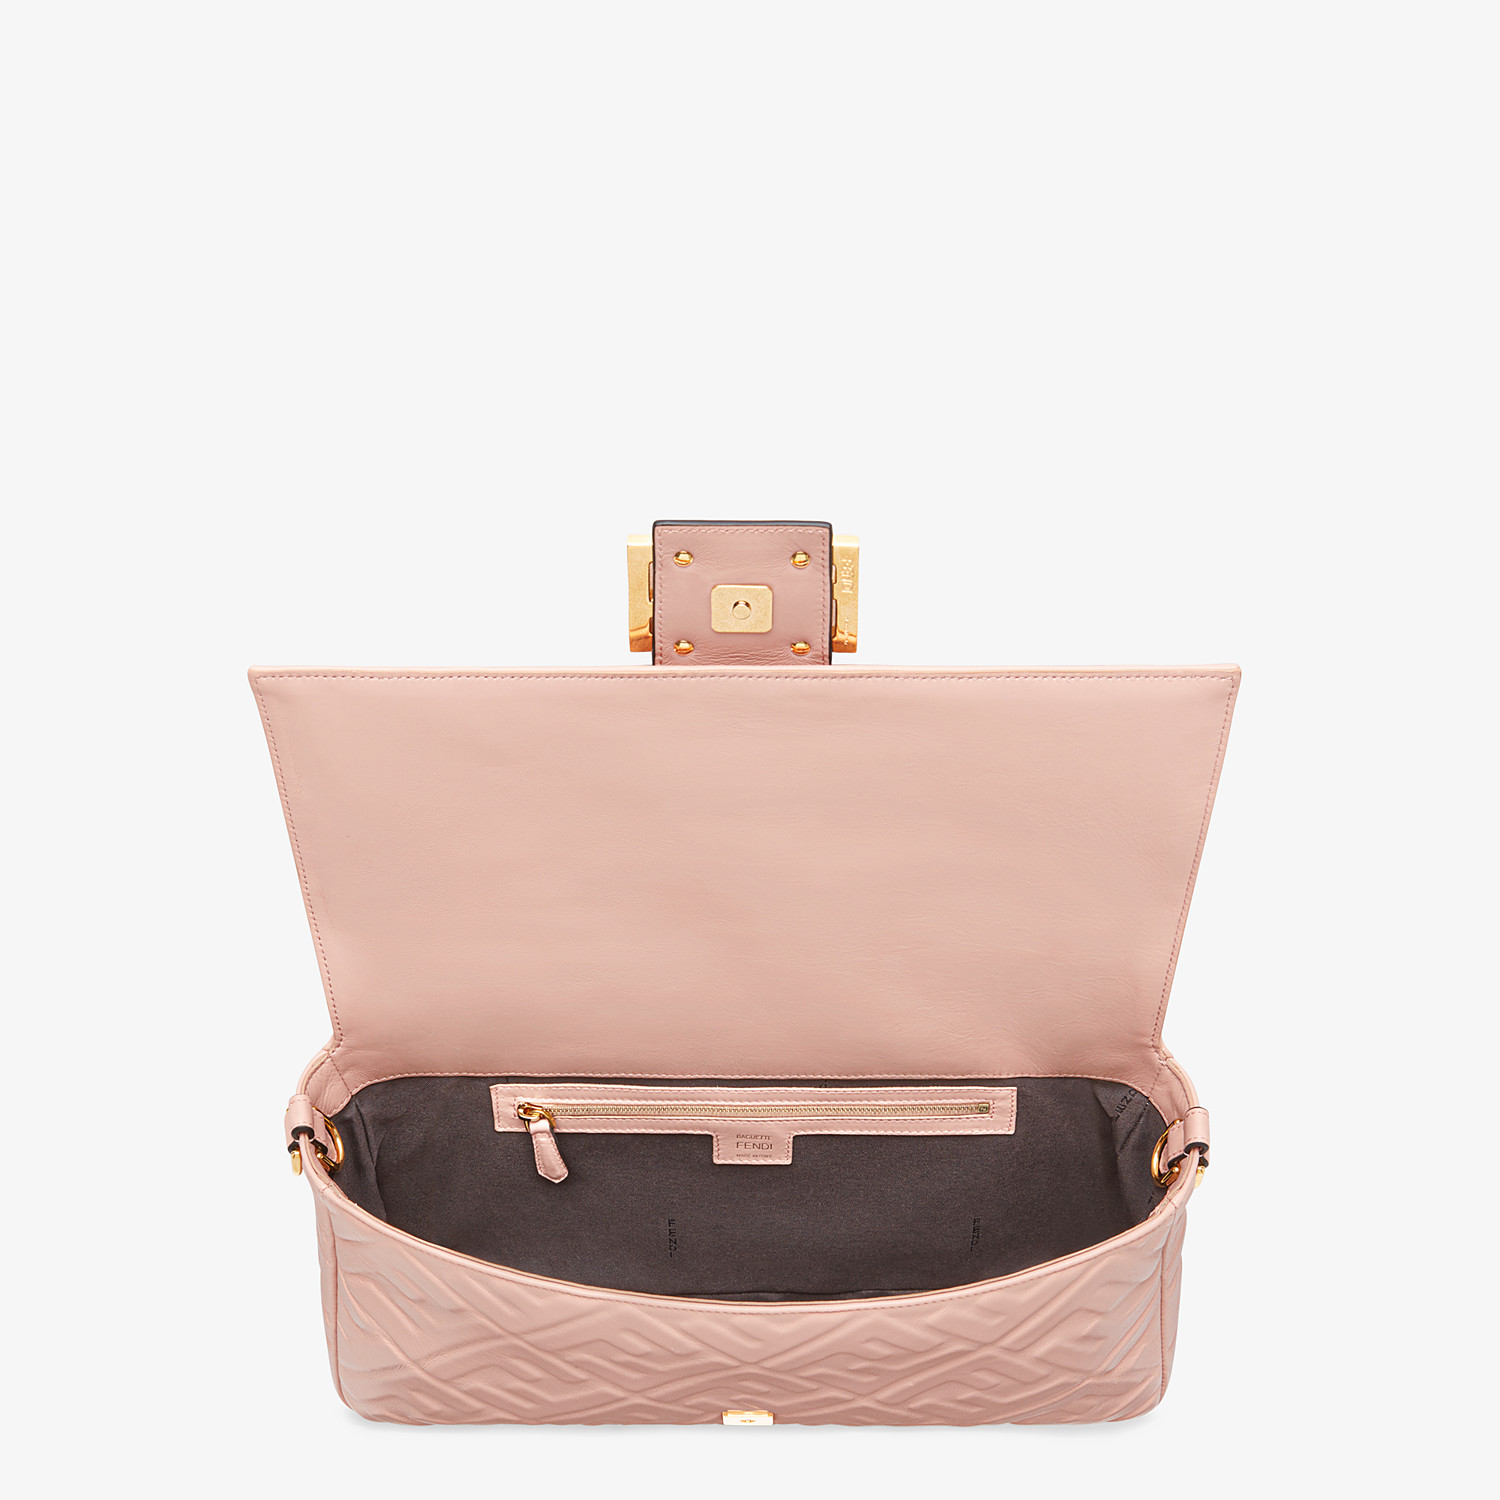 FENDI BAGUETTE LARGE - Pink nappa leather bag - view 5 detail